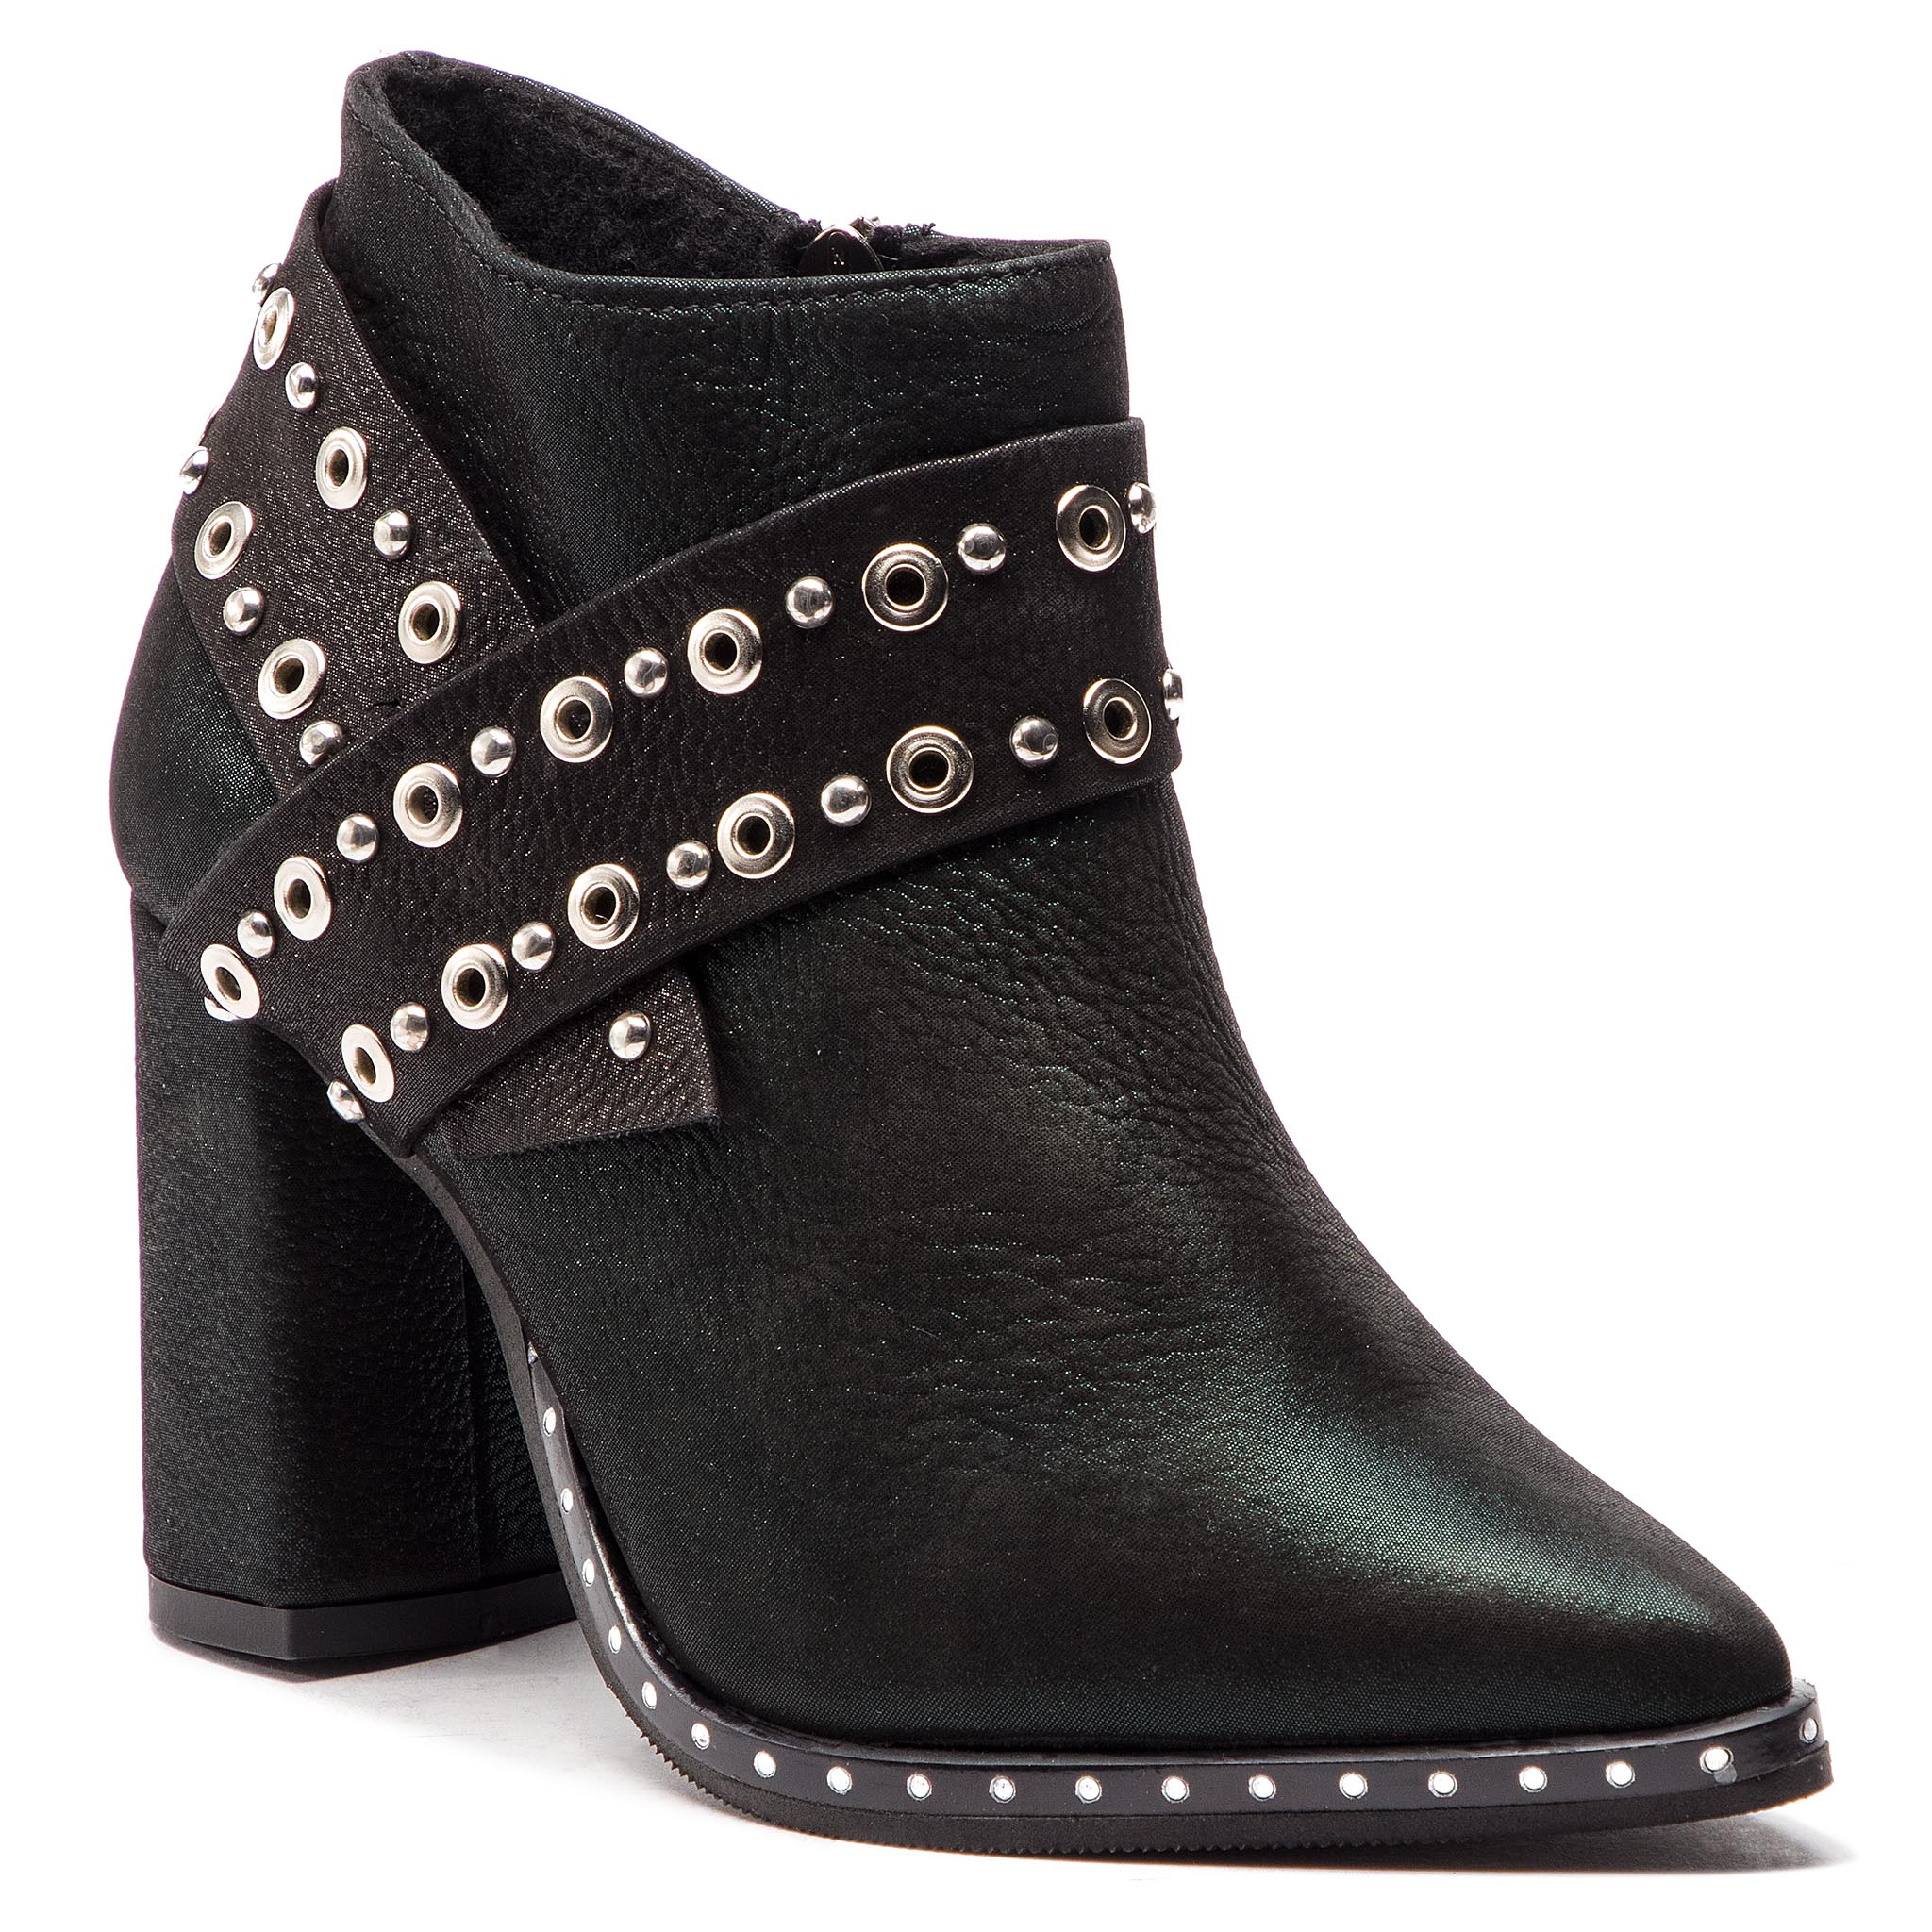 Fw127365518hb Boots Sergio Bardi Fratte 636 High nO0wP8k